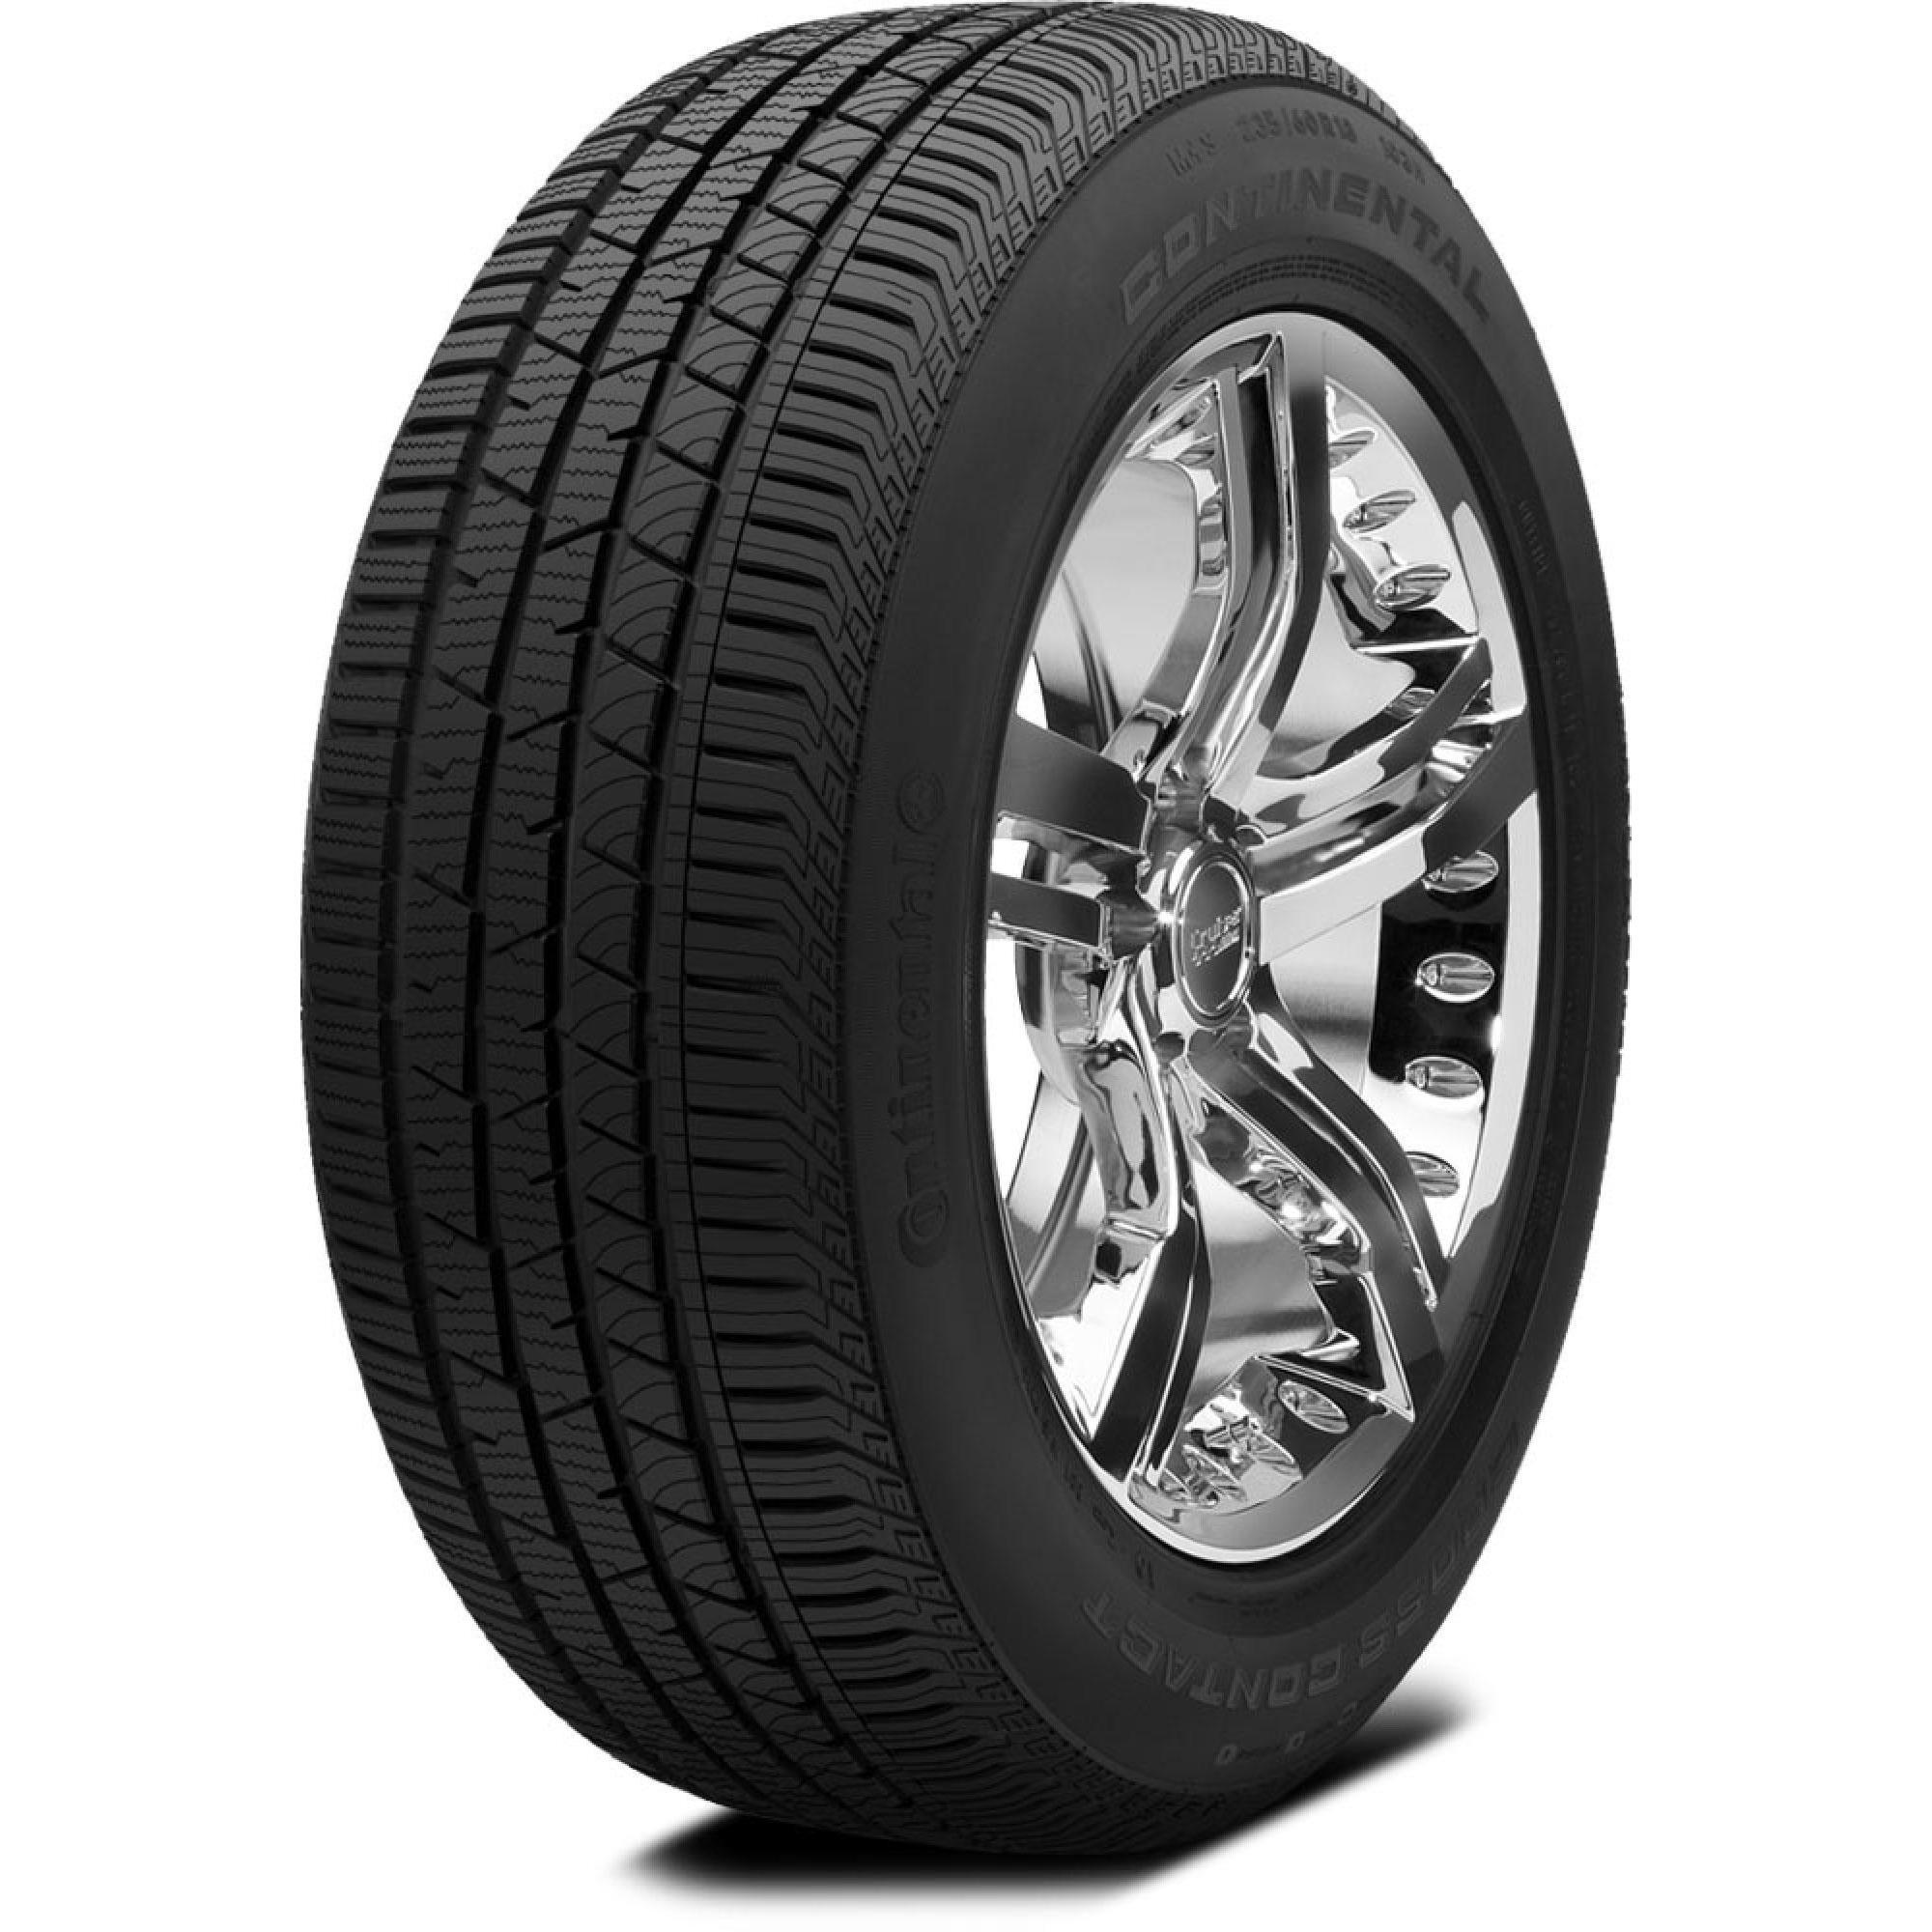 Anvelope Continental Cross Contact Lx Sport 275/40R22 108Y All Season imagine